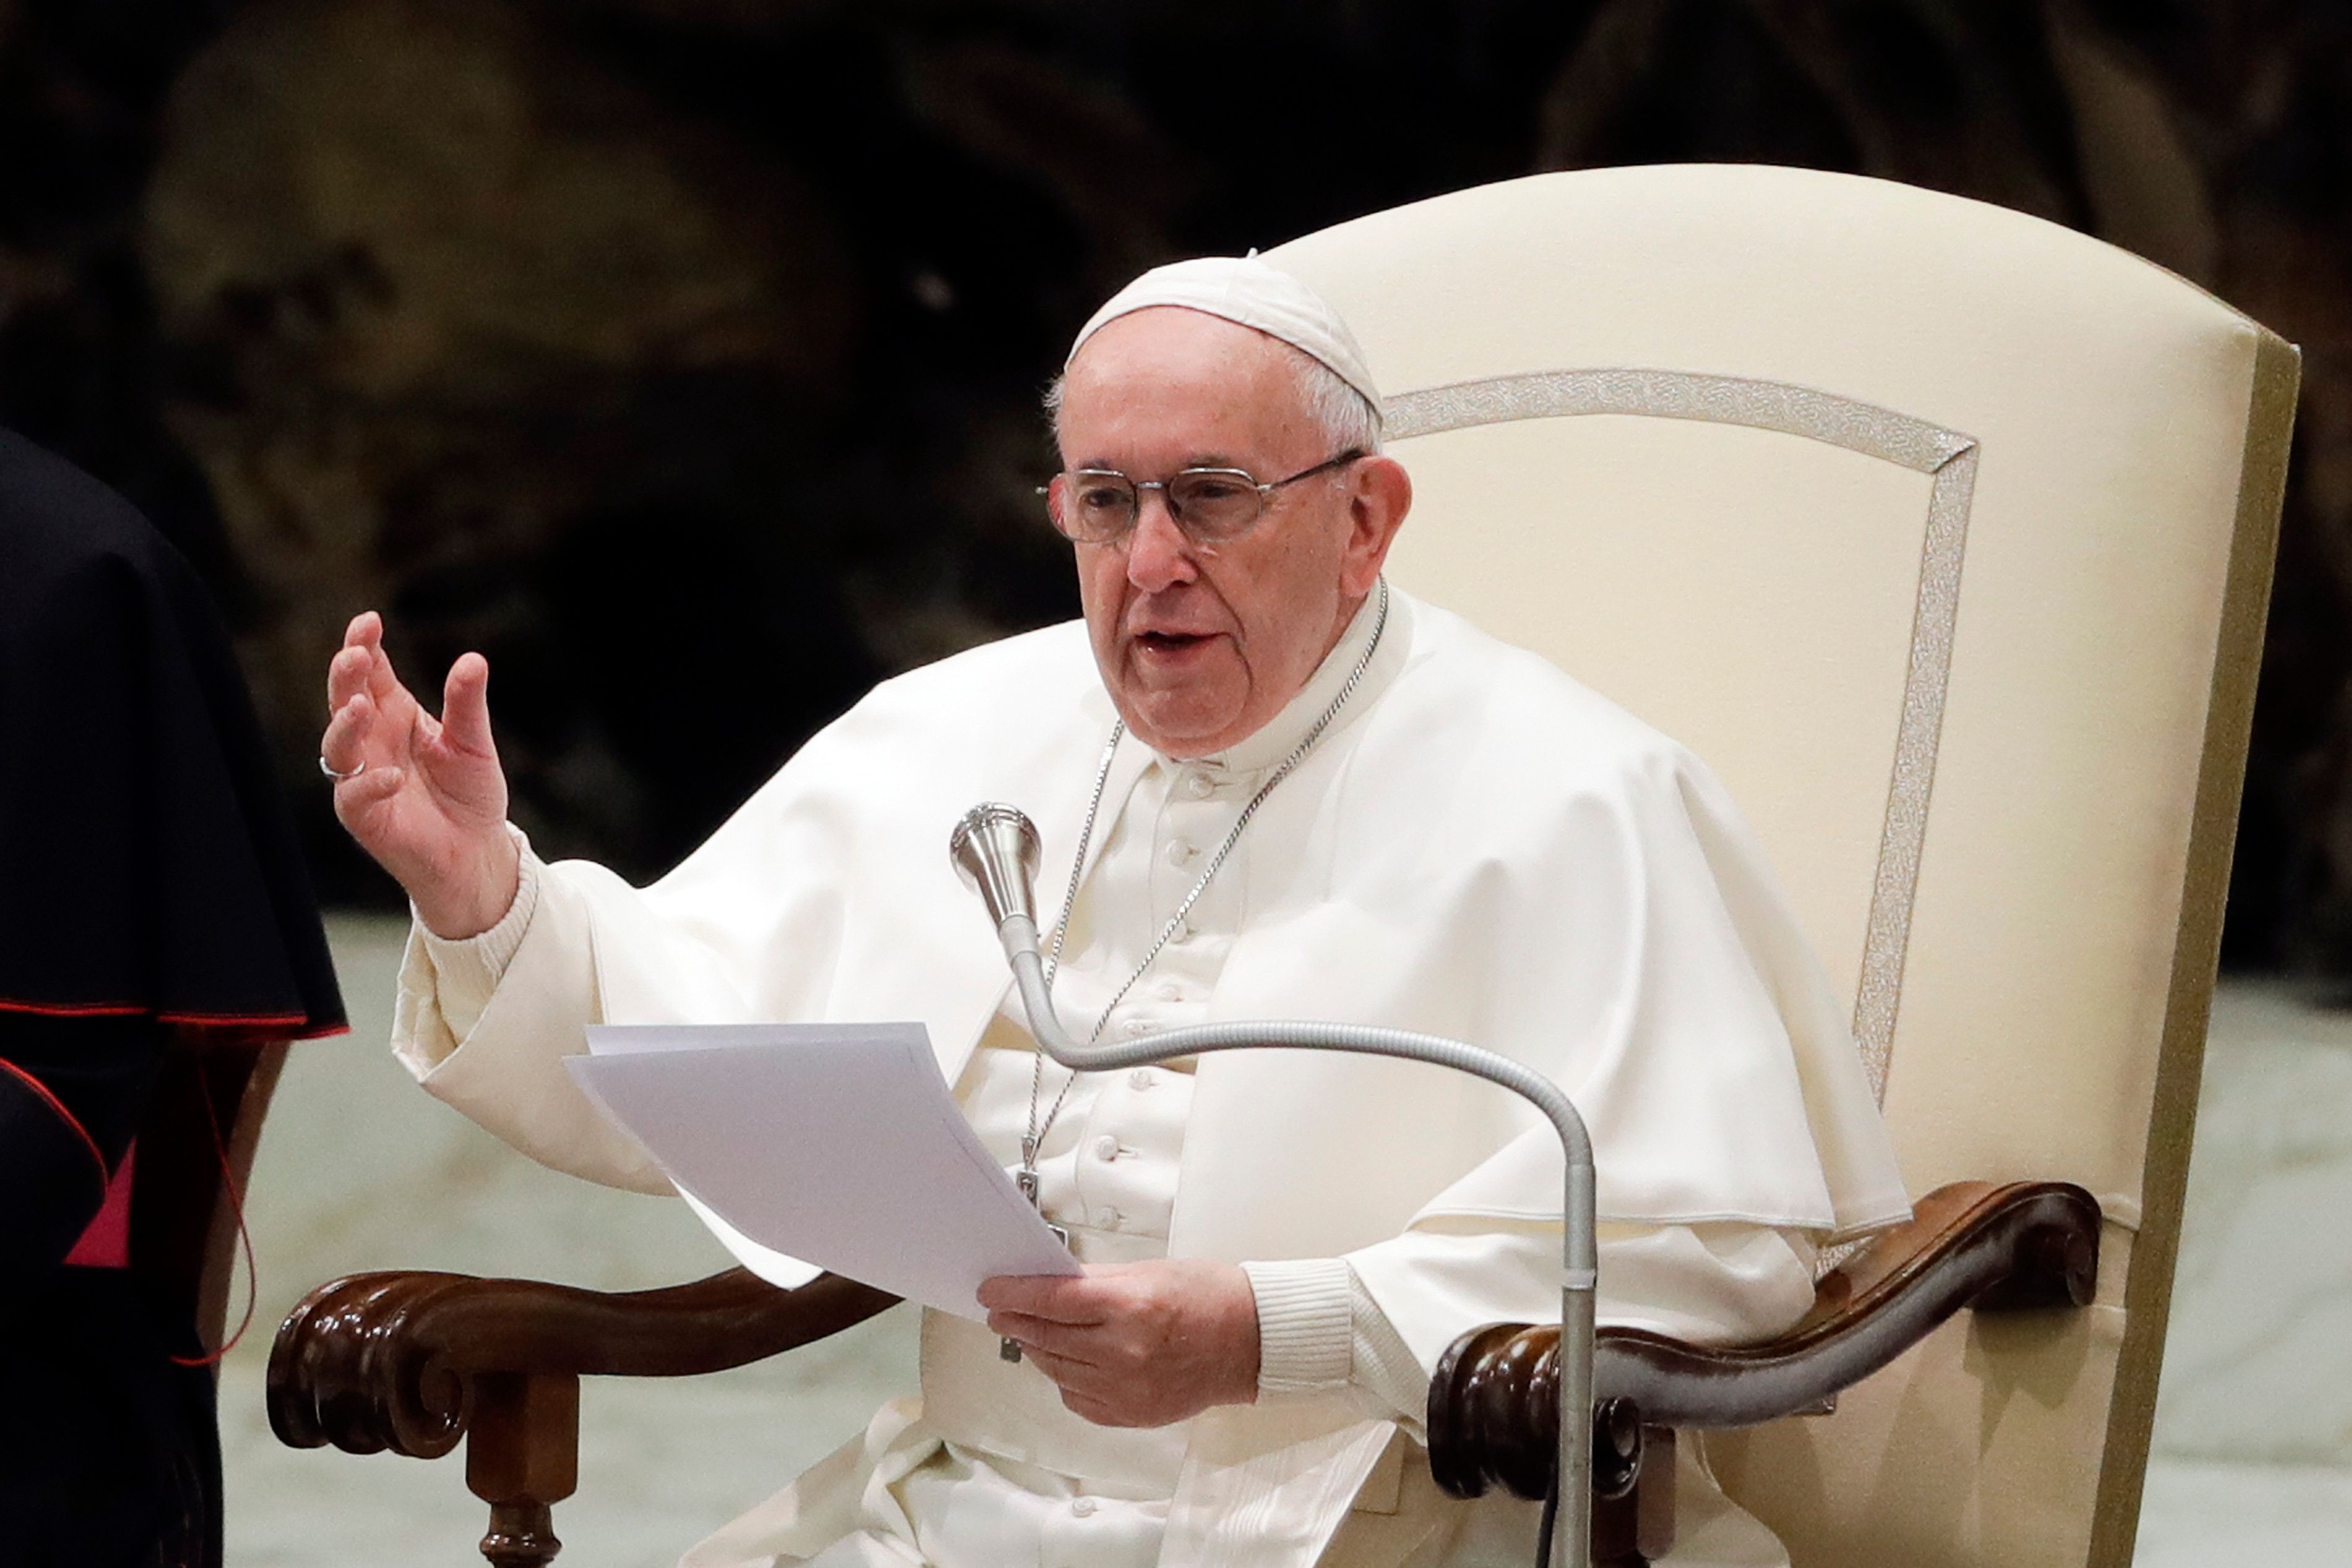 Pope Francis, who is traveling to the Arabian Peninsula on Sunday, delivers a speech at the Vatican on Jan. 30, 2019.